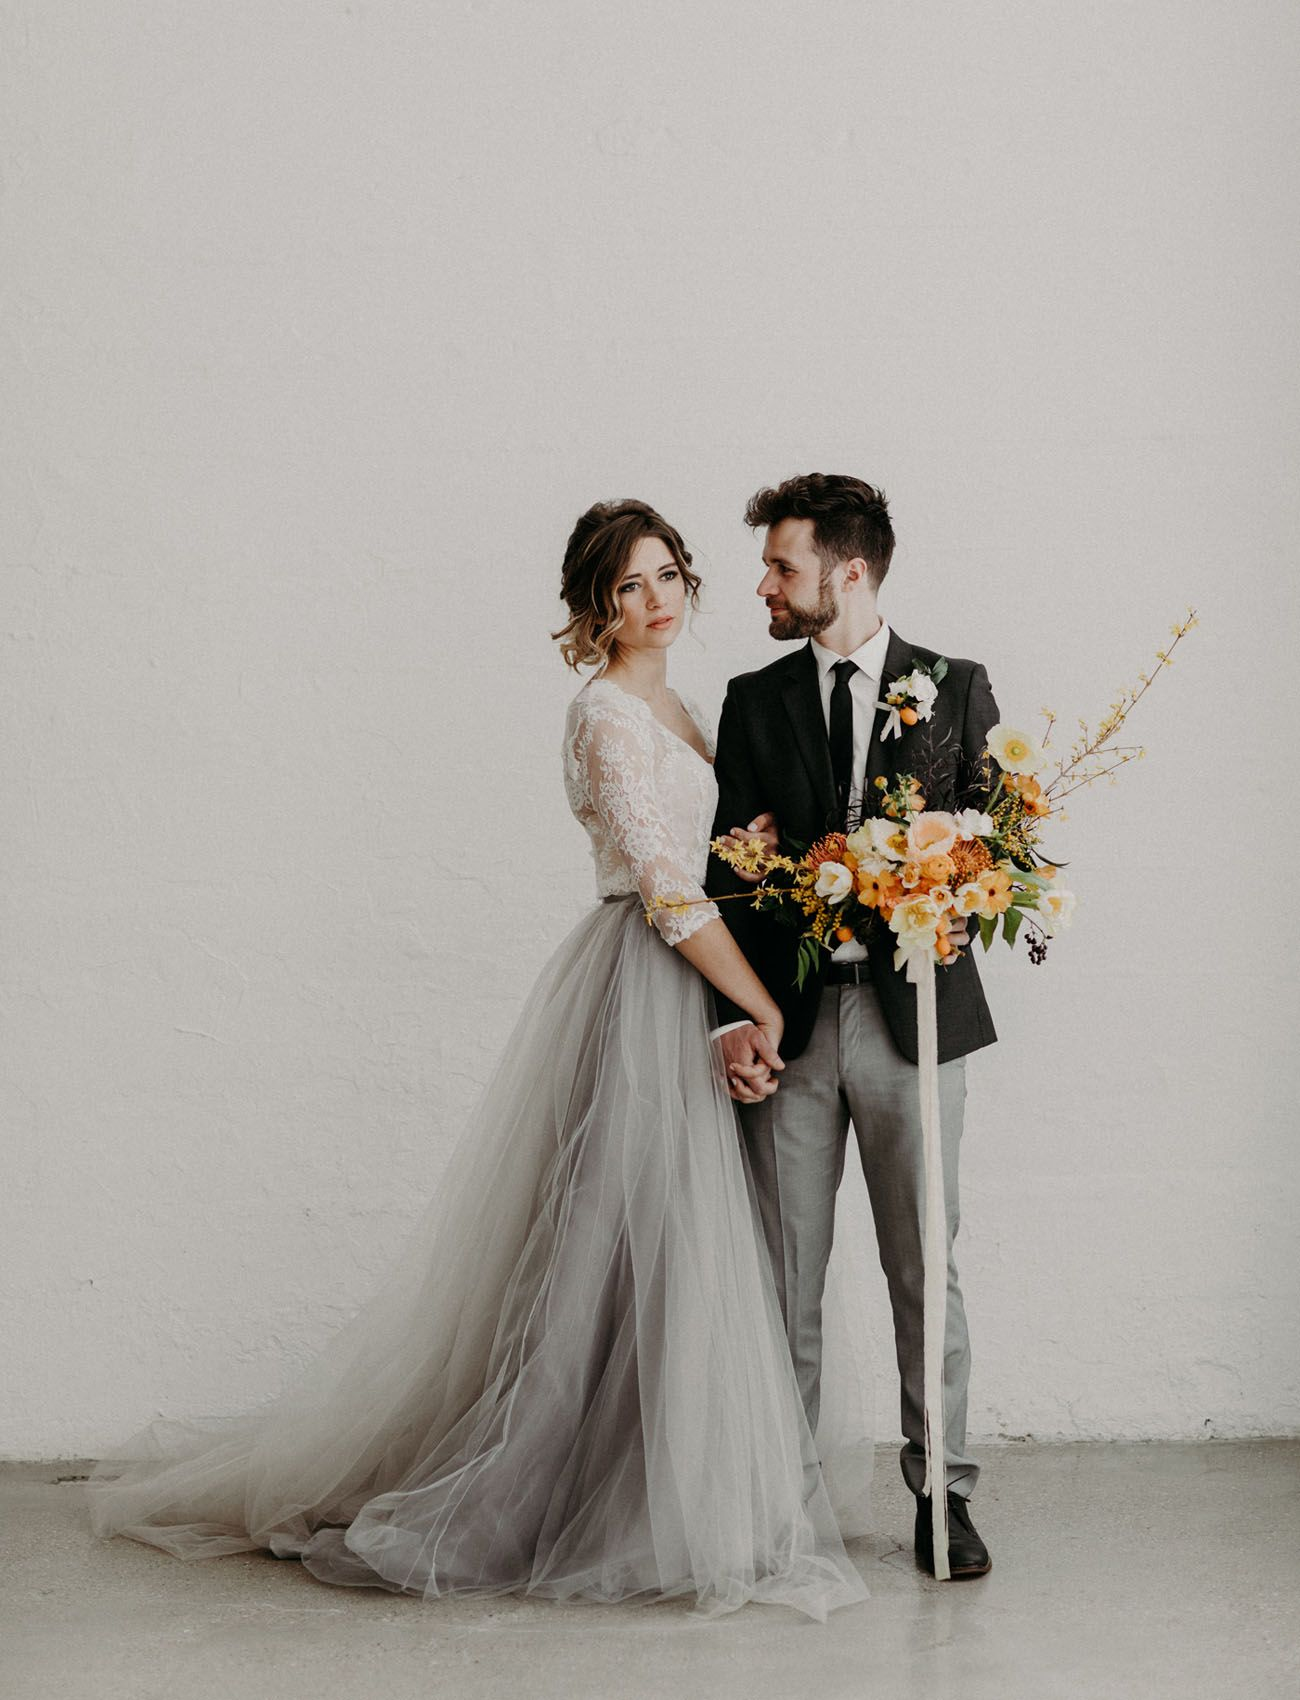 Modern Moody Wedding Inspiration Featuring A Gray Tulle Skirt